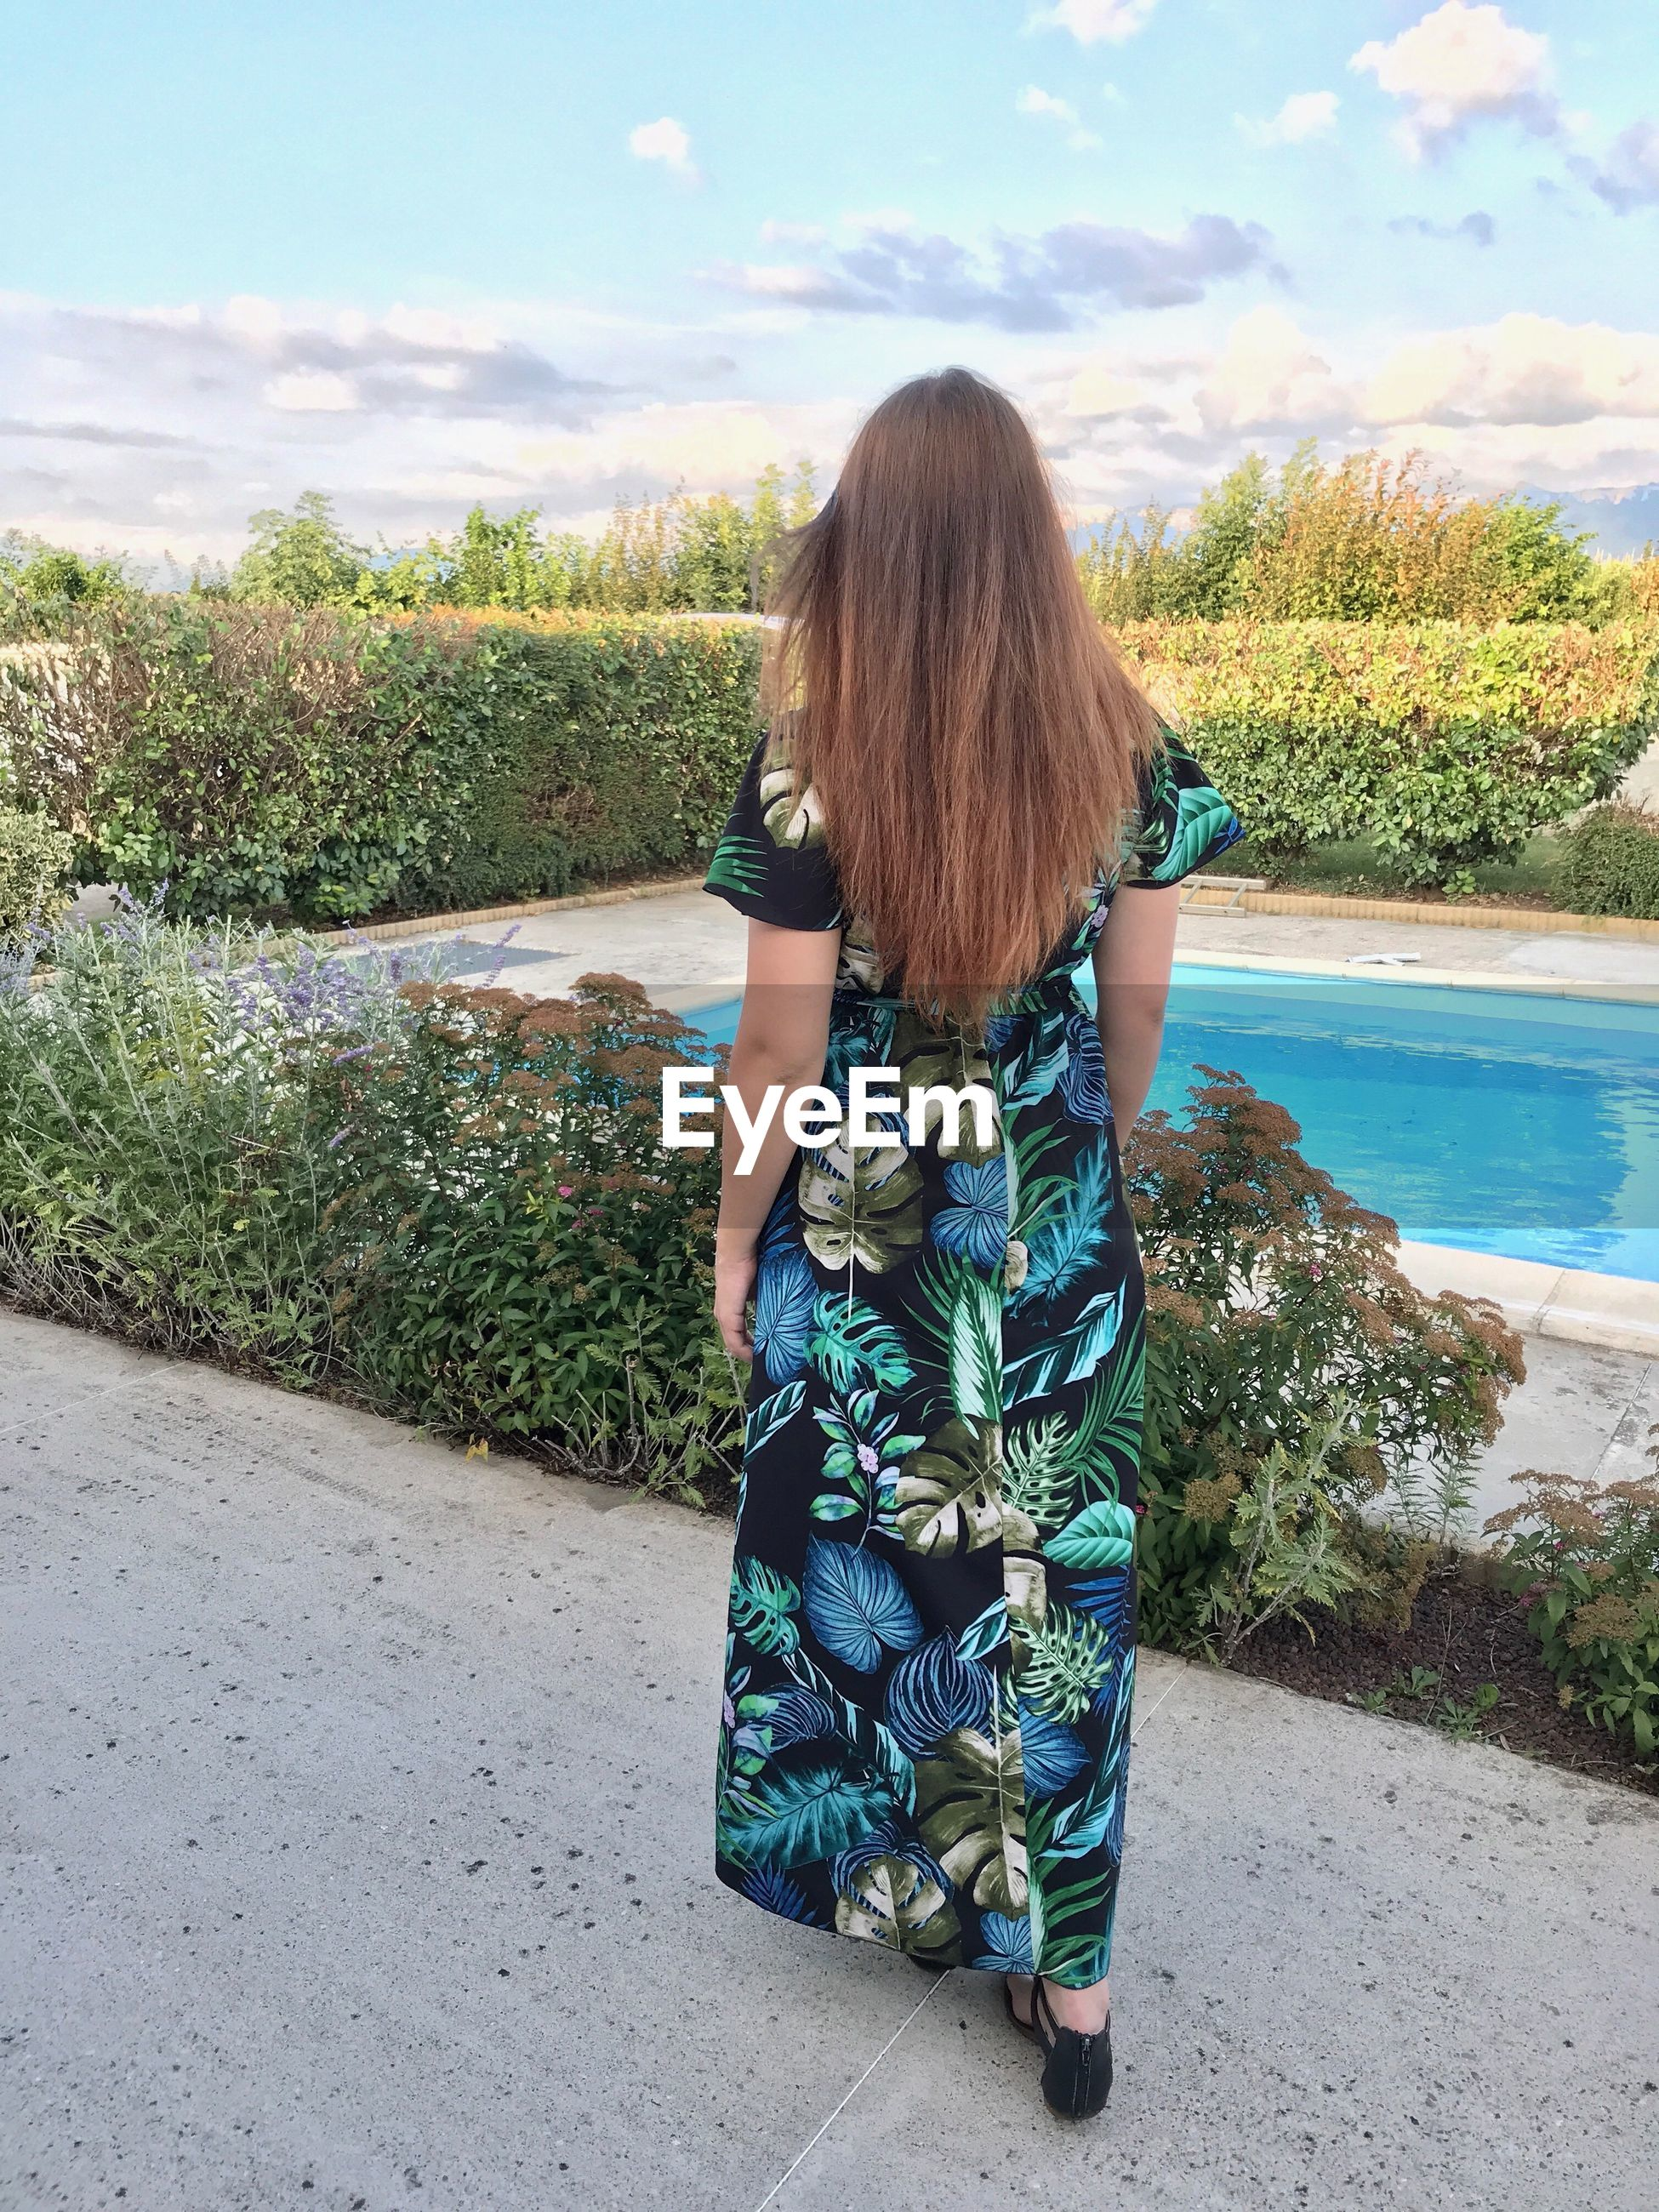 Rear view of woman walking by plants against sky